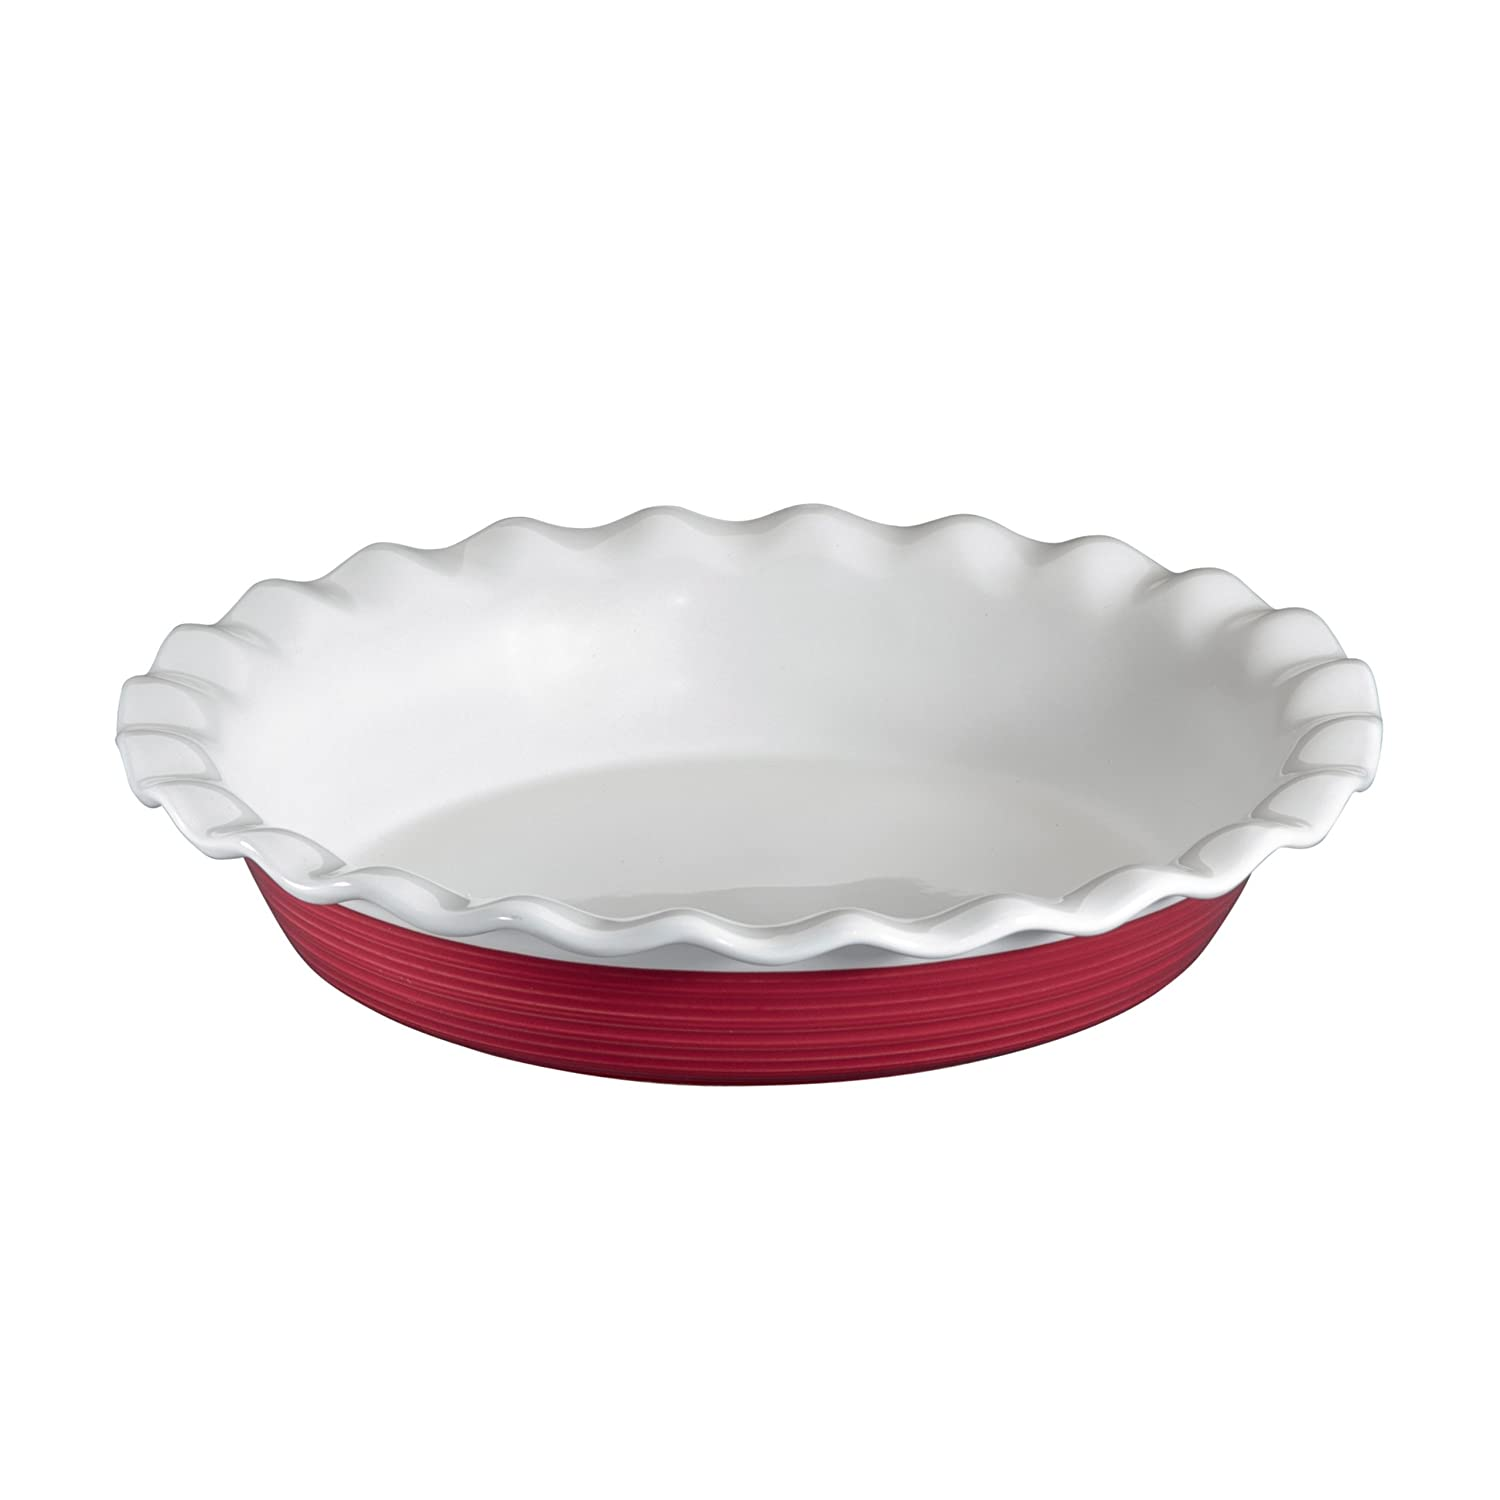 Amazon.com CorningWare Etch 9.5 Inch Pie Plate in Sand Bake And Serve Sets Kitchen \u0026 Dining  sc 1 st  Amazon.com & Amazon.com: CorningWare Etch 9.5 Inch Pie Plate in Sand: Bake And ...